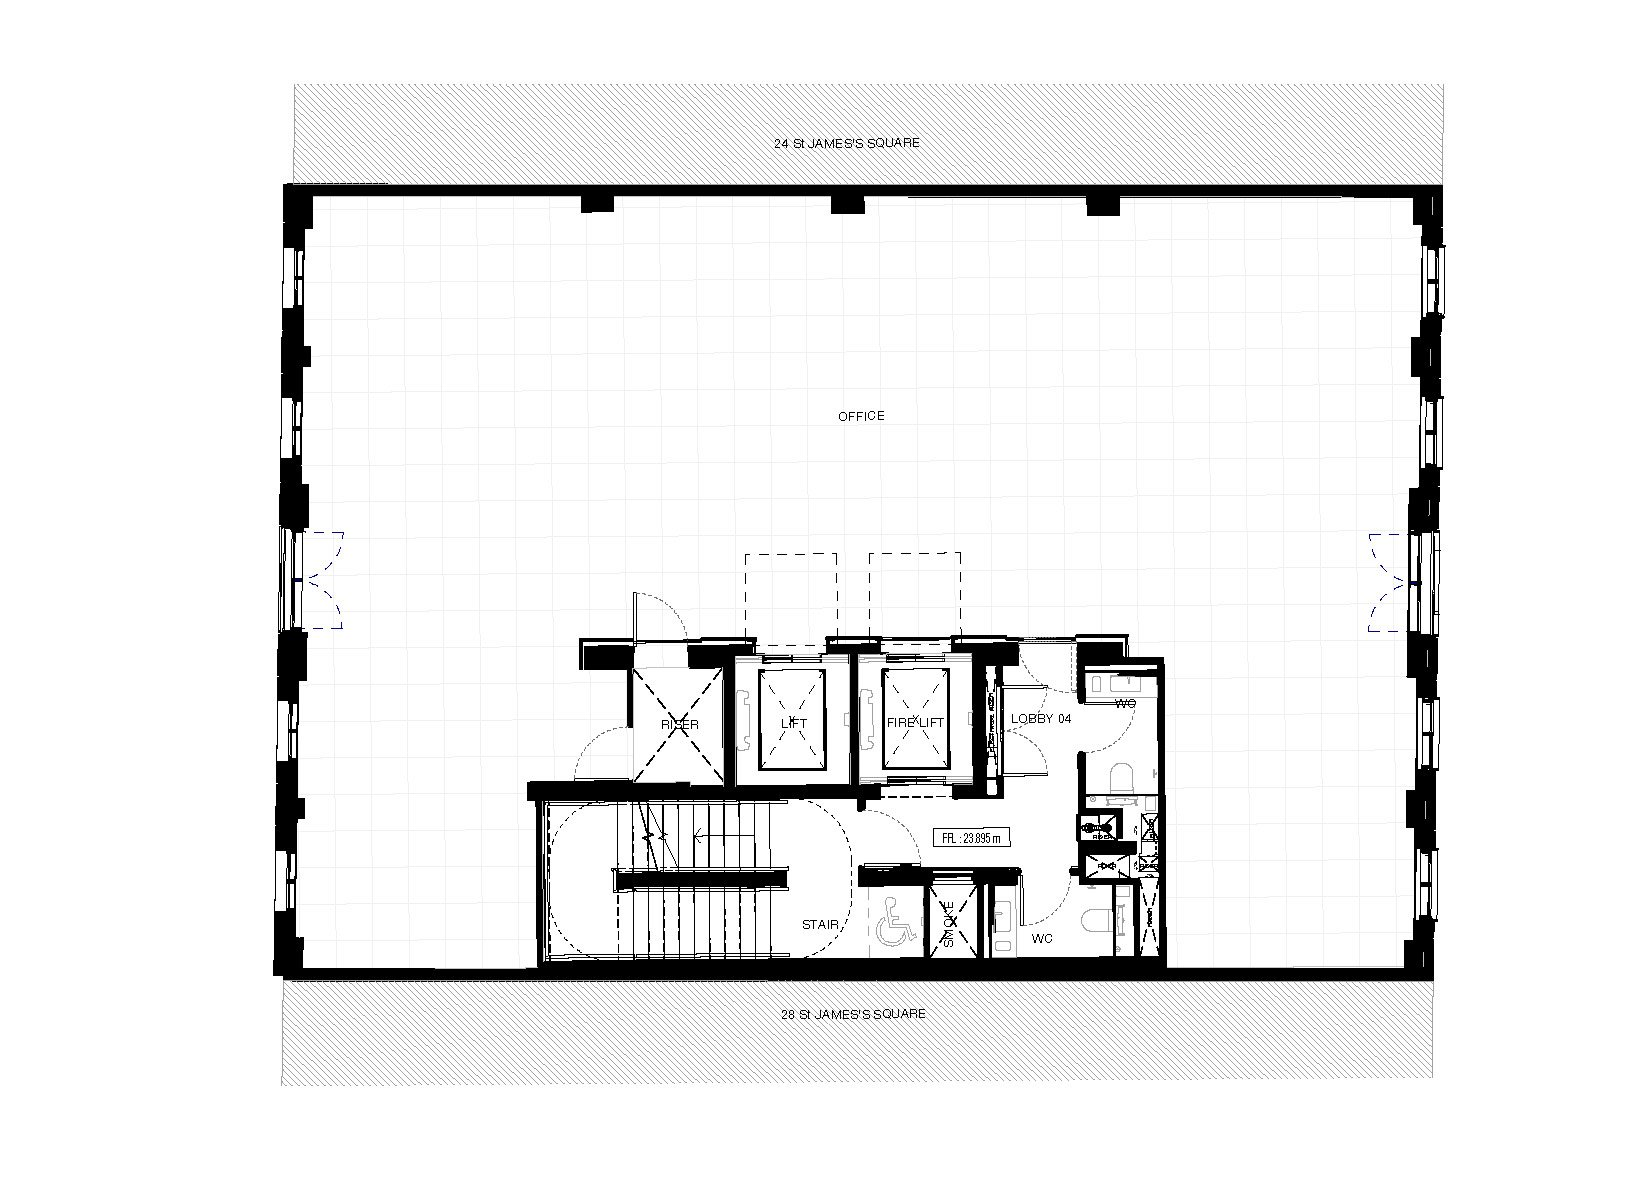 26 St James's Square, London, Typical Floor Plan